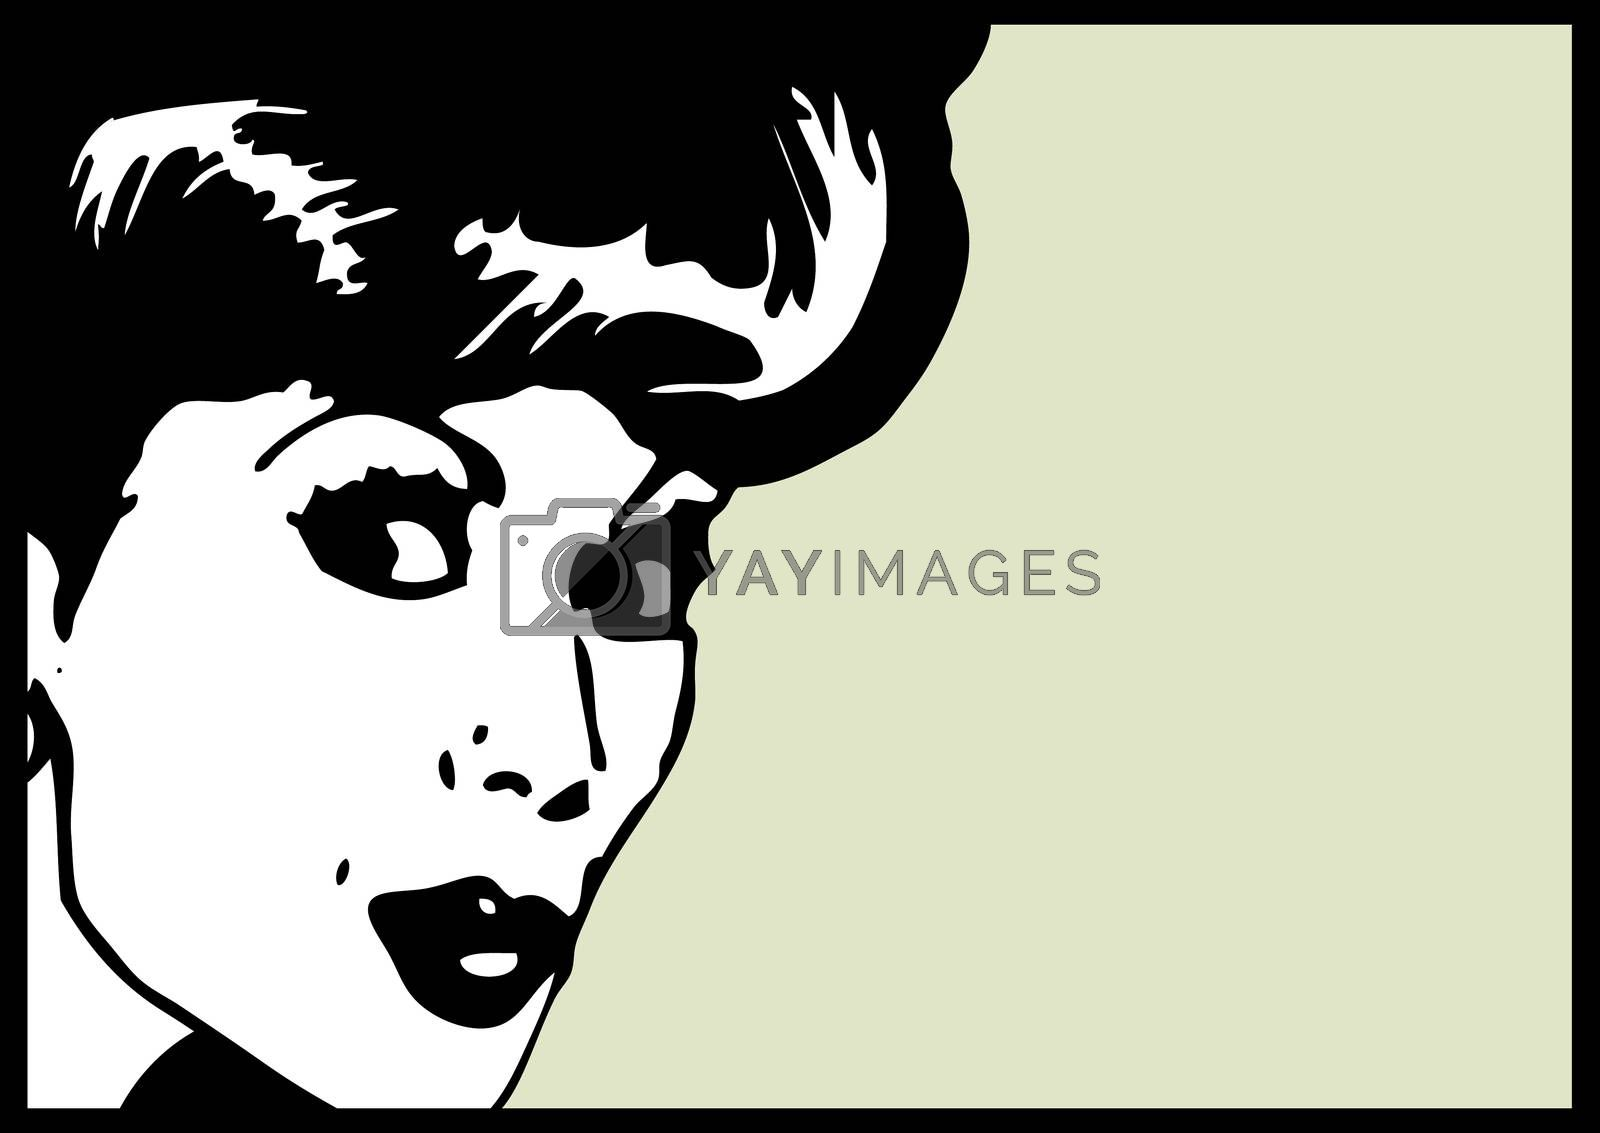 Vintage Clip Art Woman Secret card